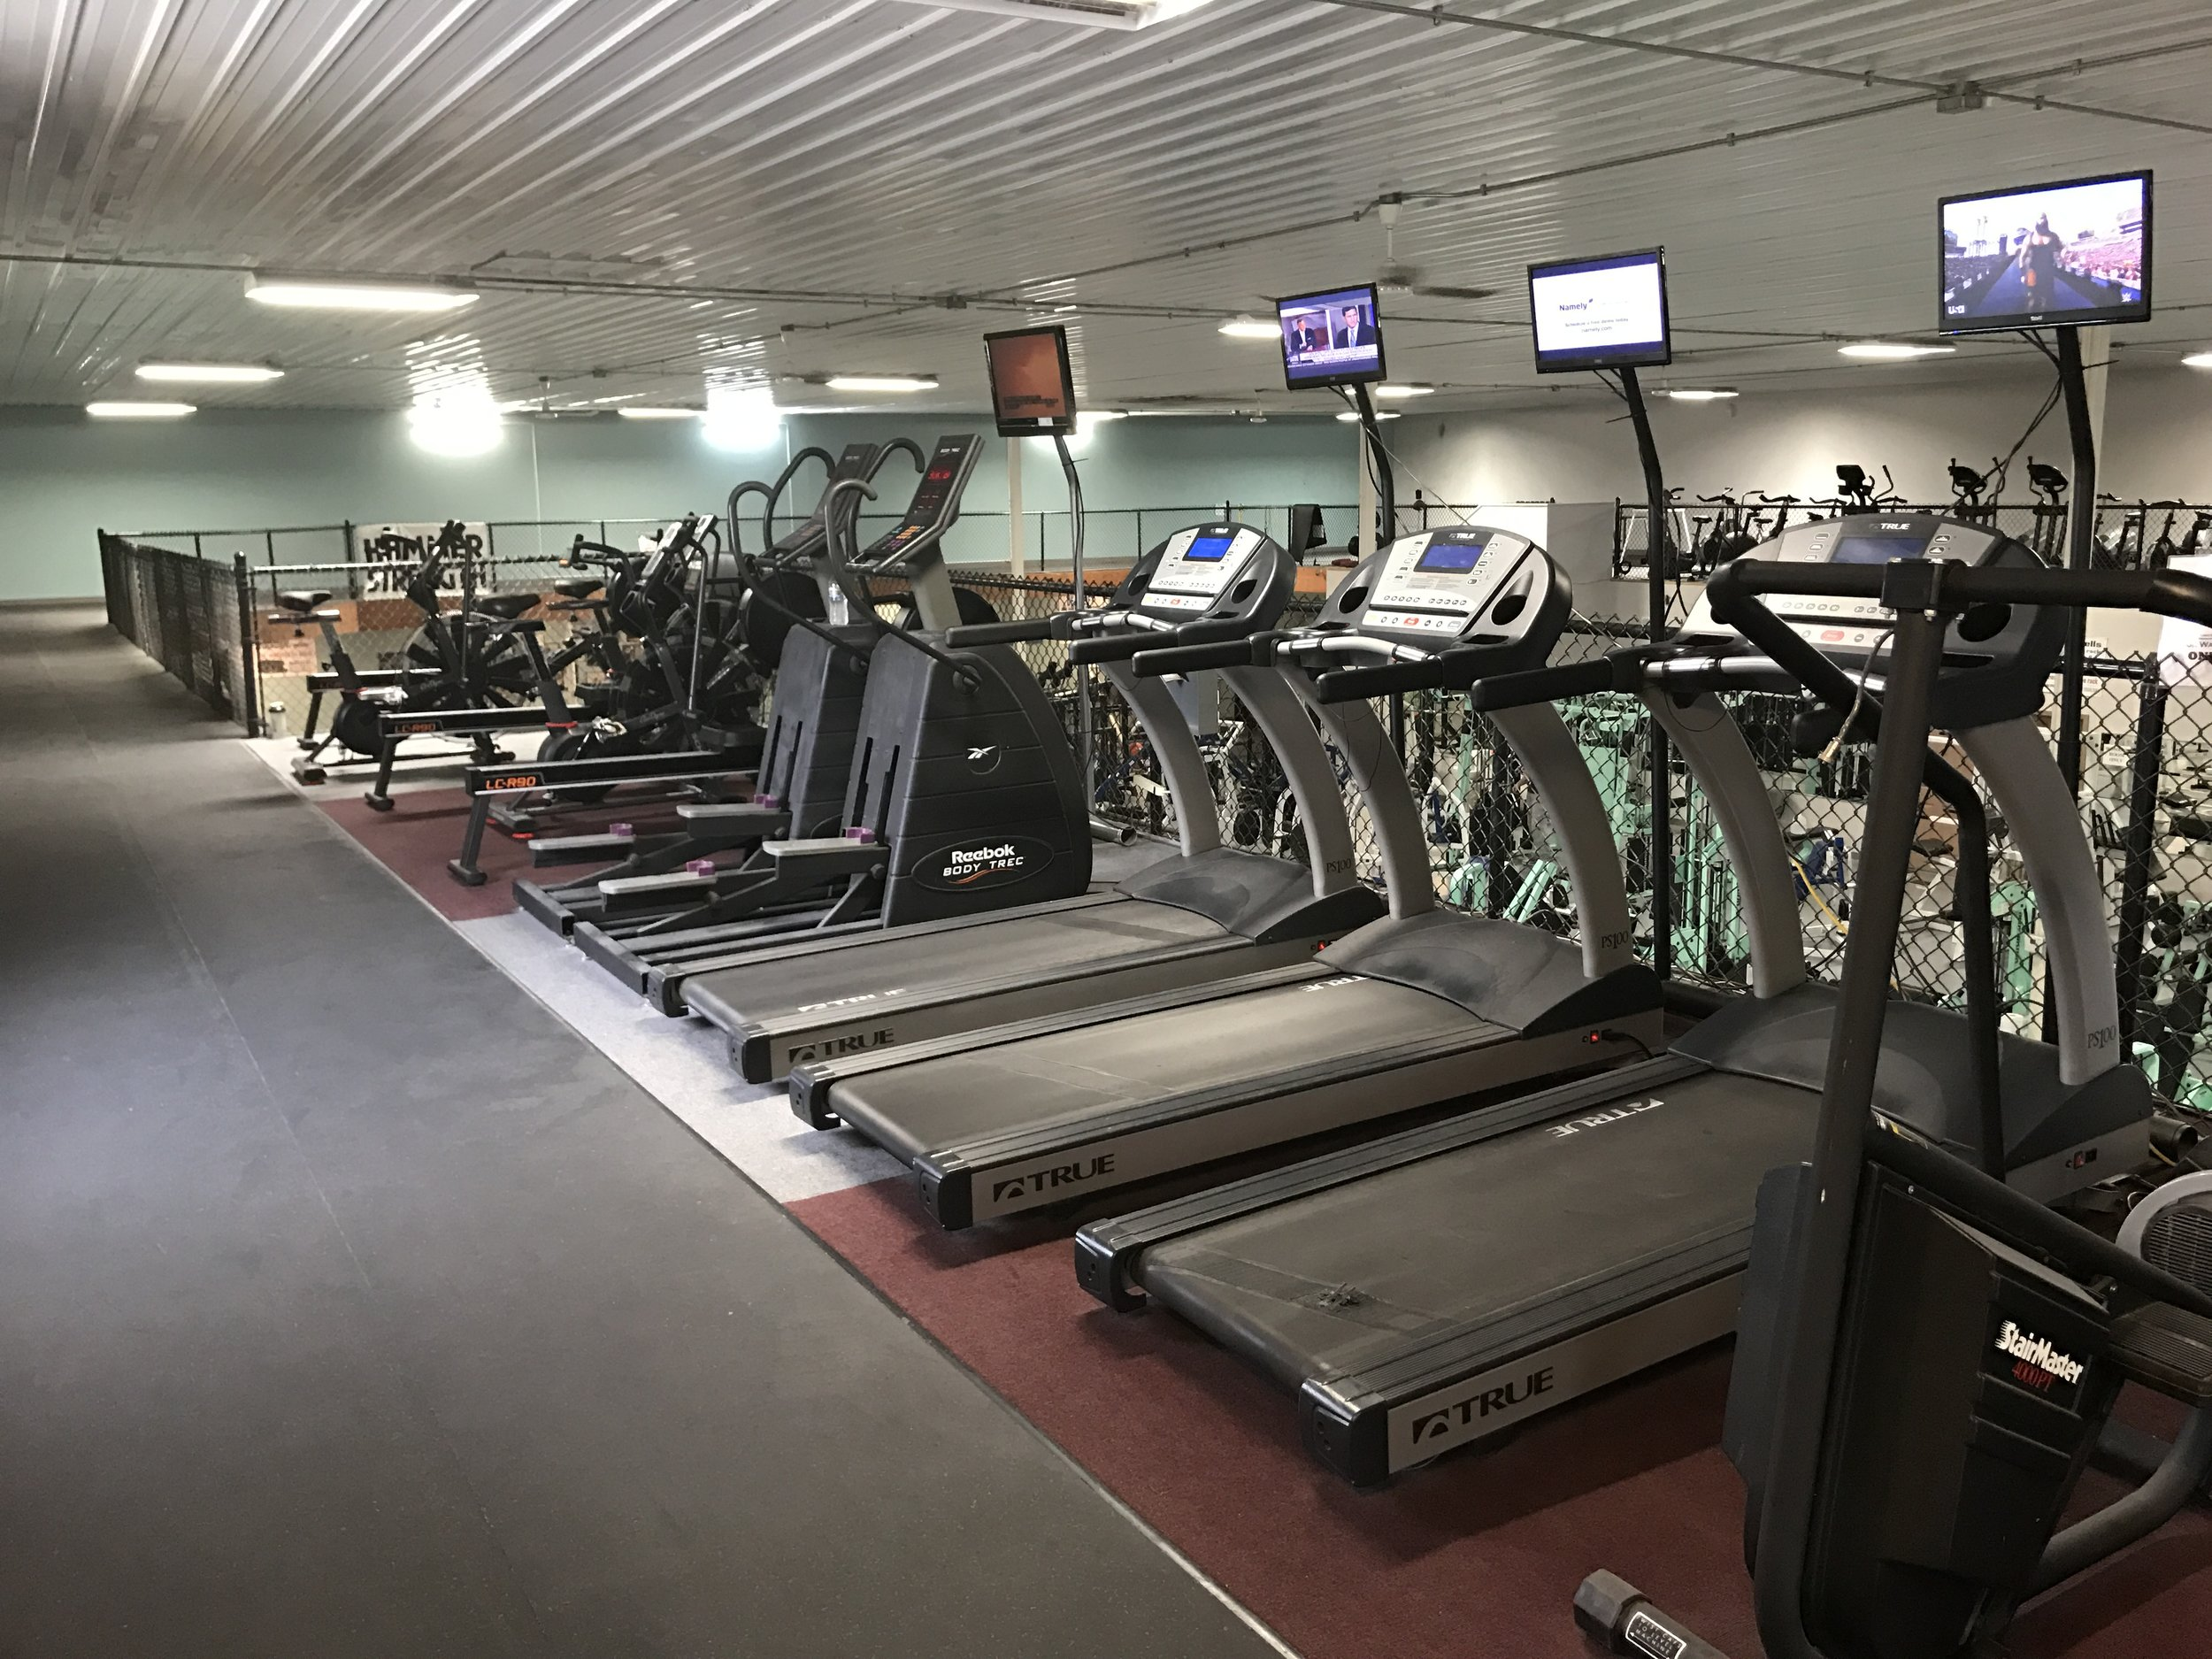 Steppers, Treadmills, Rowers, Bikes & Low Impact Lap Track on 2nd Floor